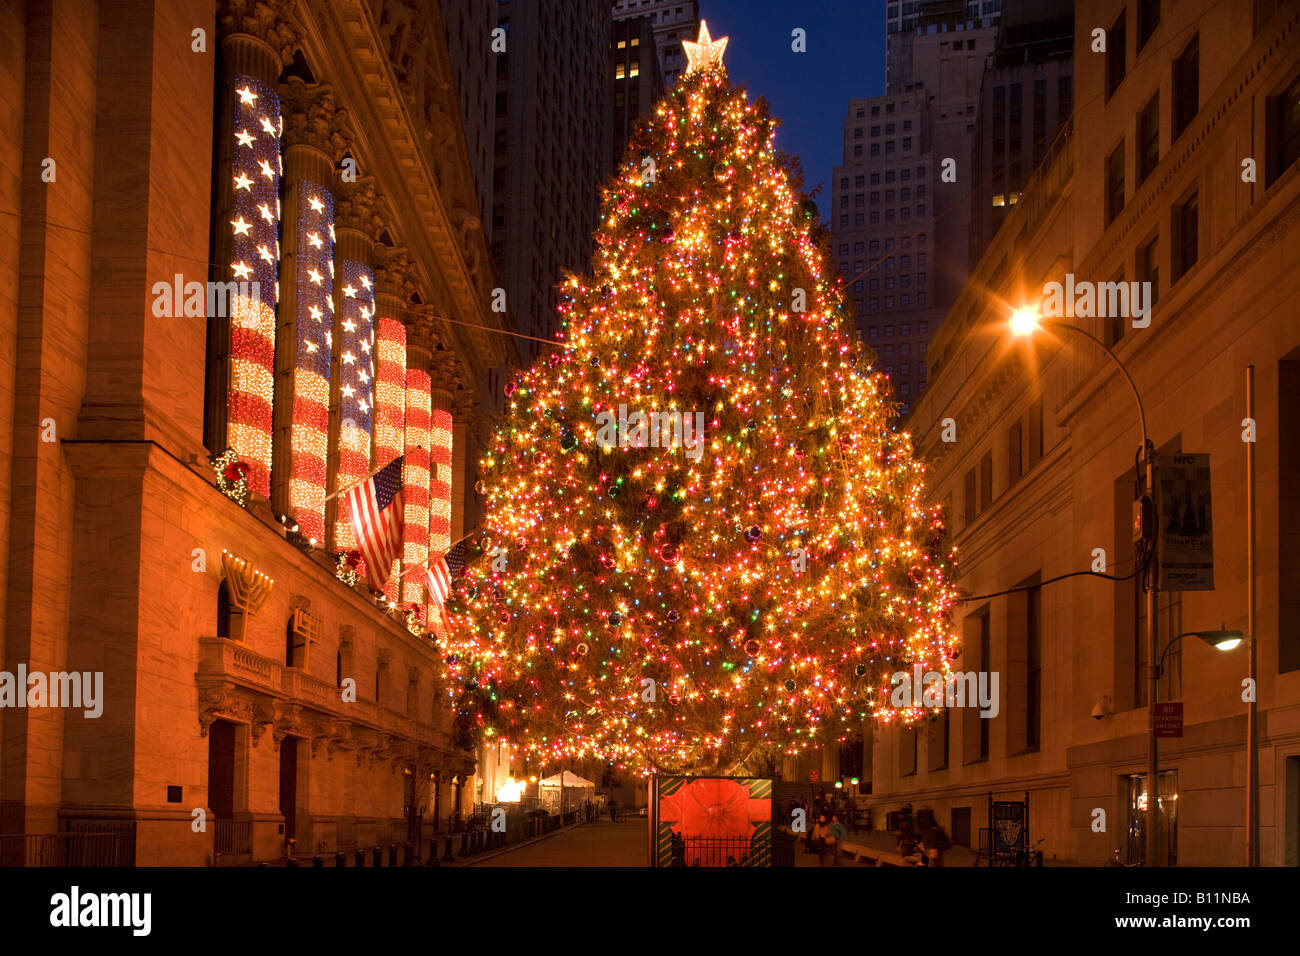 When Is The Christmas Tree Lighting In New York